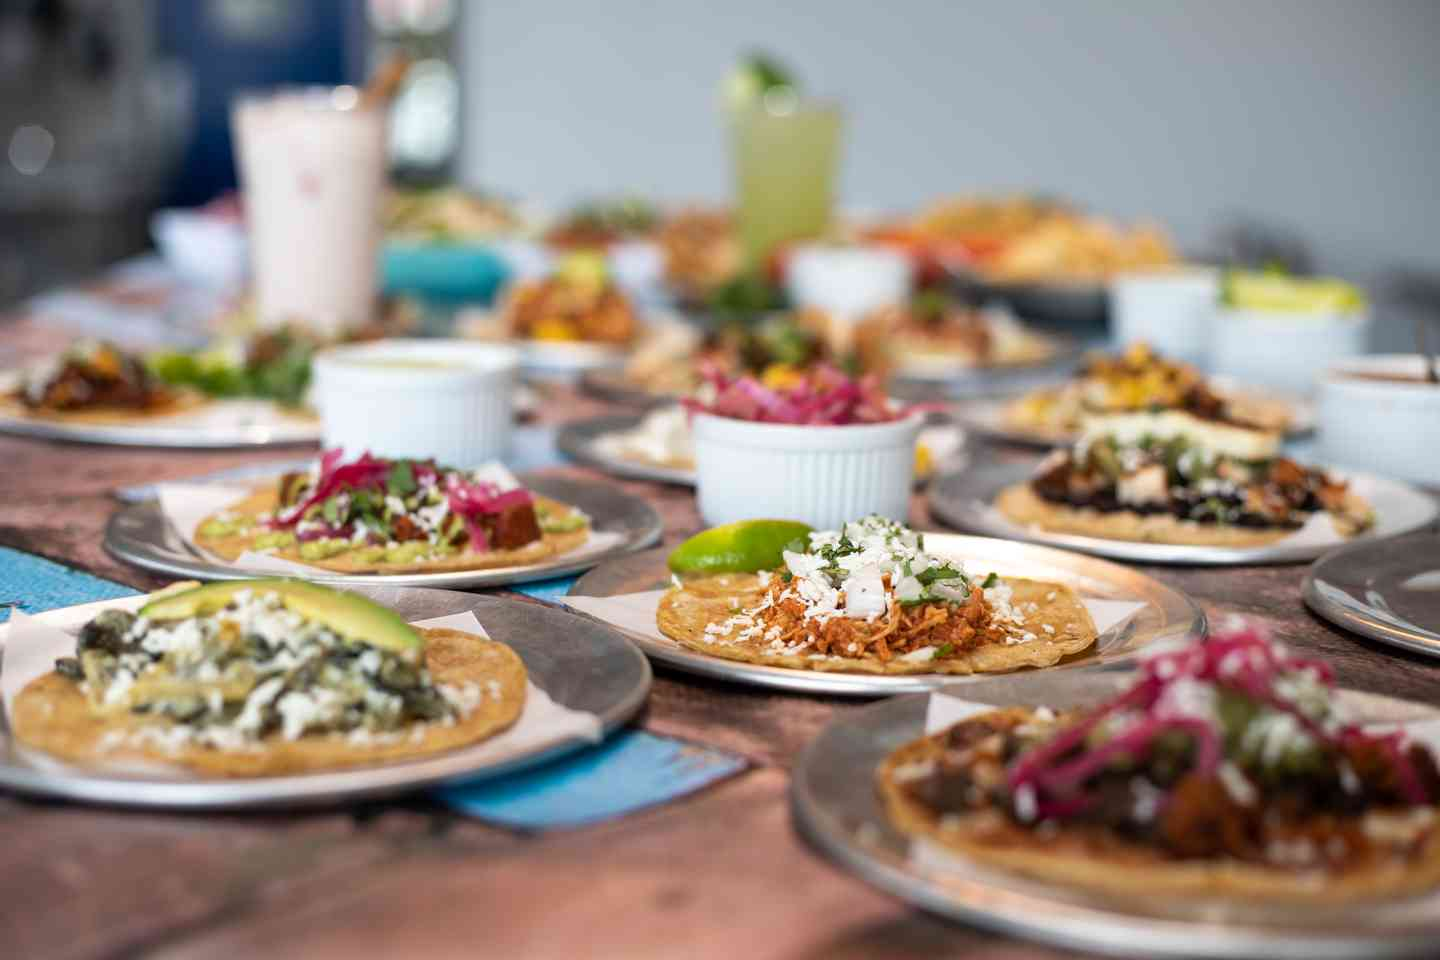 Group of Tacos